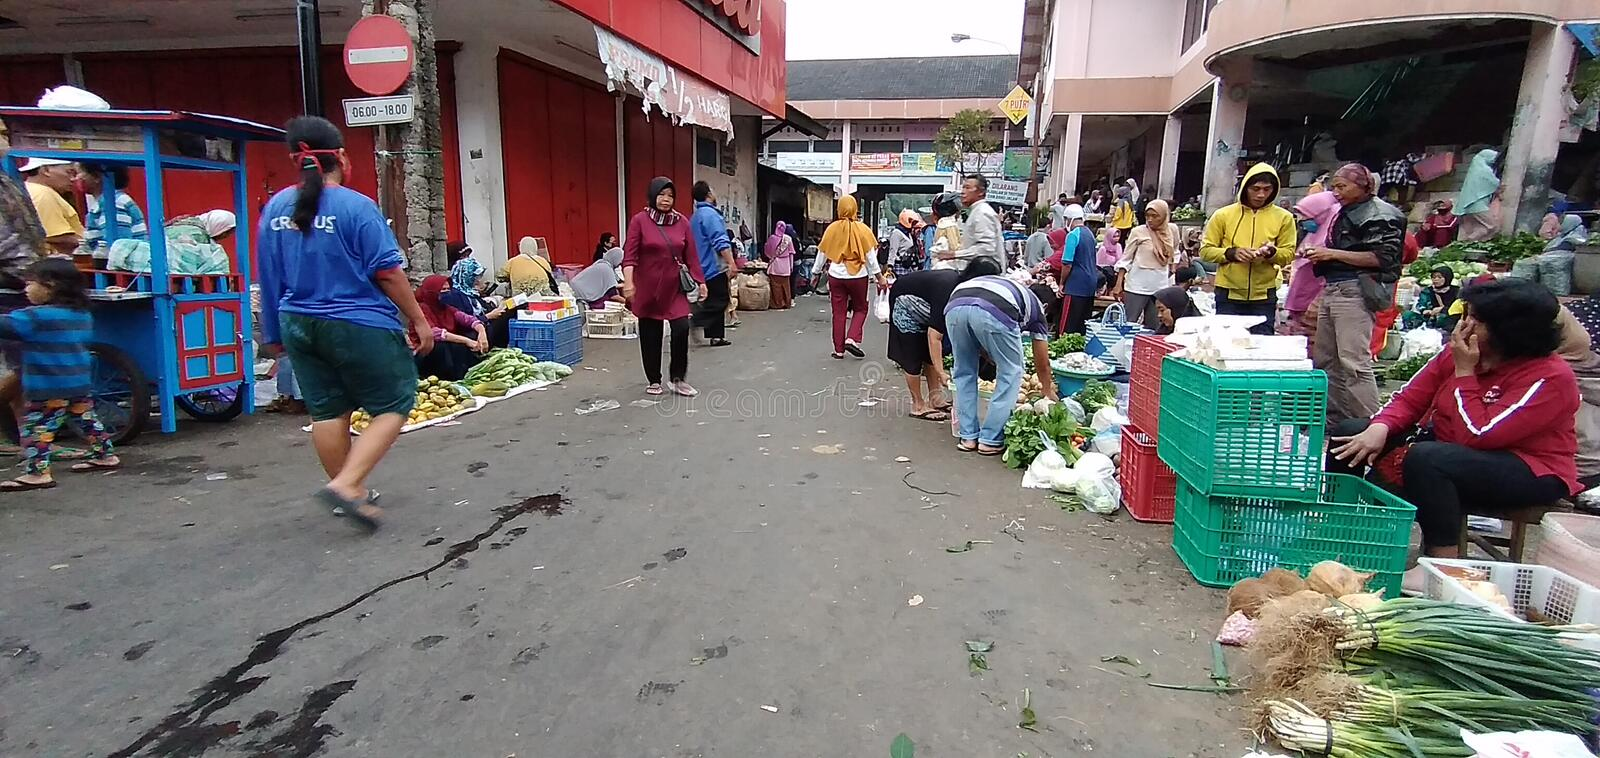 Temanggung central java indonesia, july 25, 2020 : Morning atmosphere in a traditional market. royalty free stock image